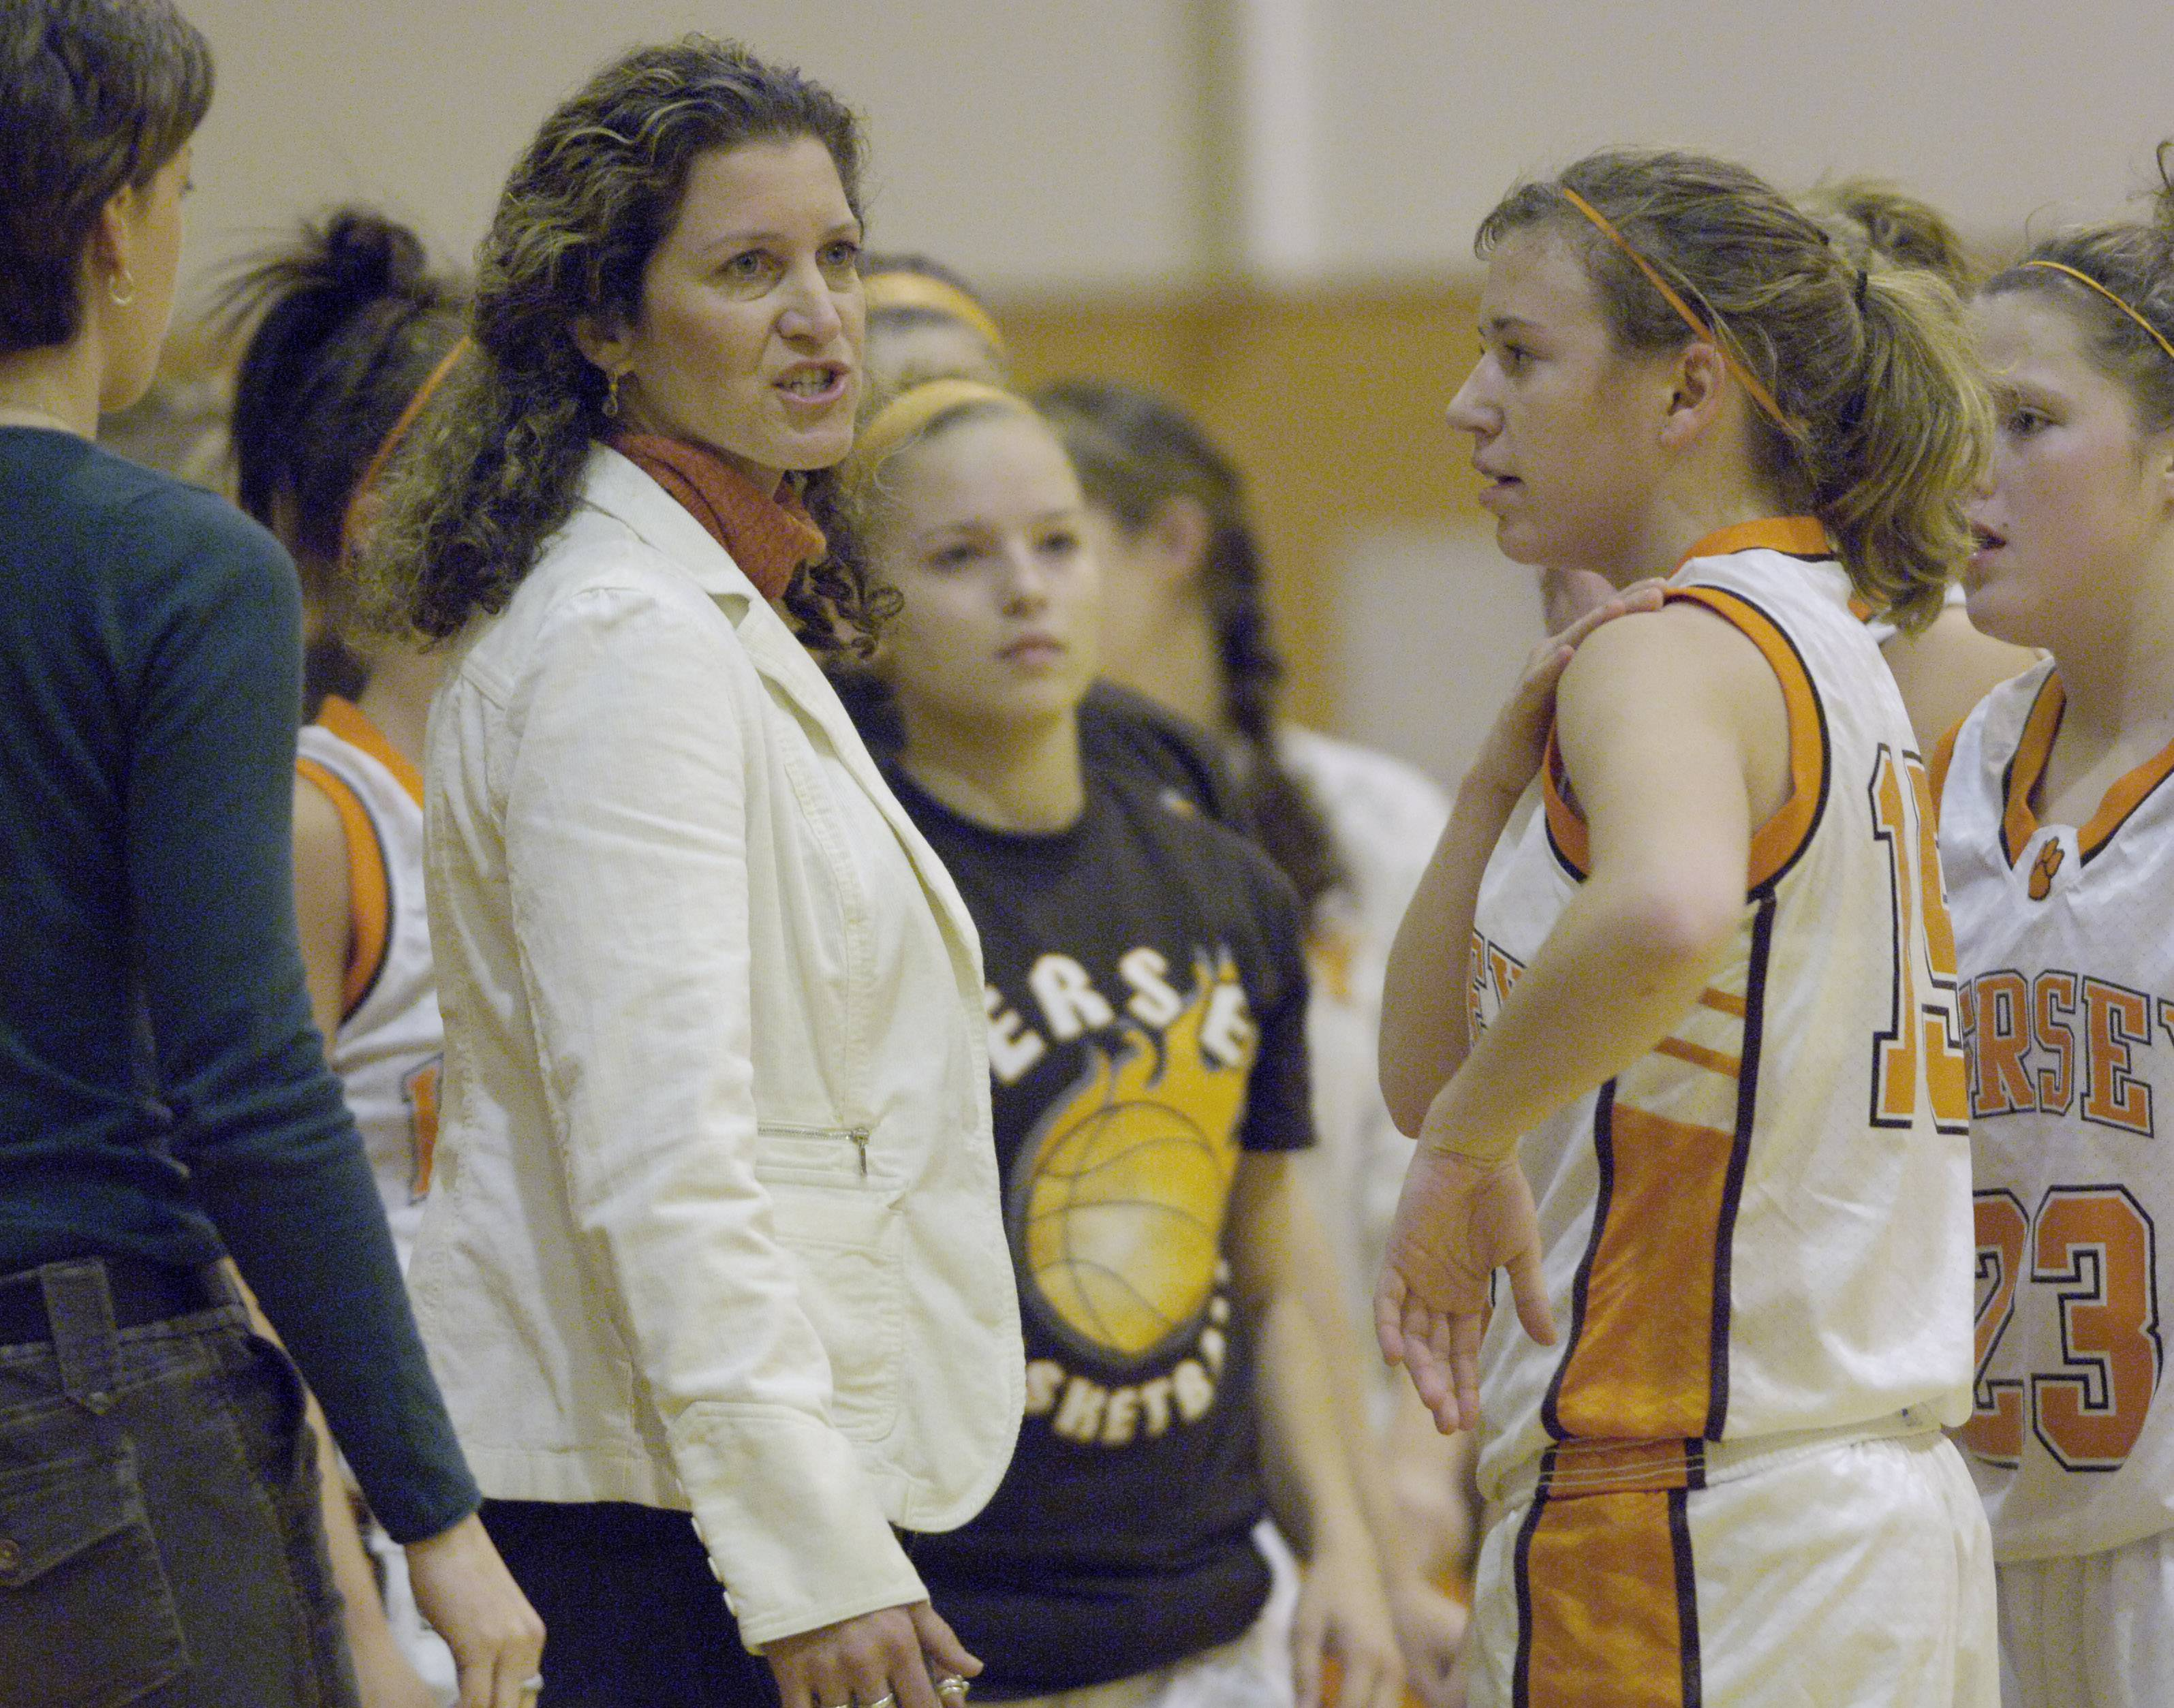 Joe Lewnard/jlewnard@dailyherald.comHersey girls basketball coach Mary Fendley, here with her team during a timeout in the 2006 season, recently joined the IBCA Hall of Fame.